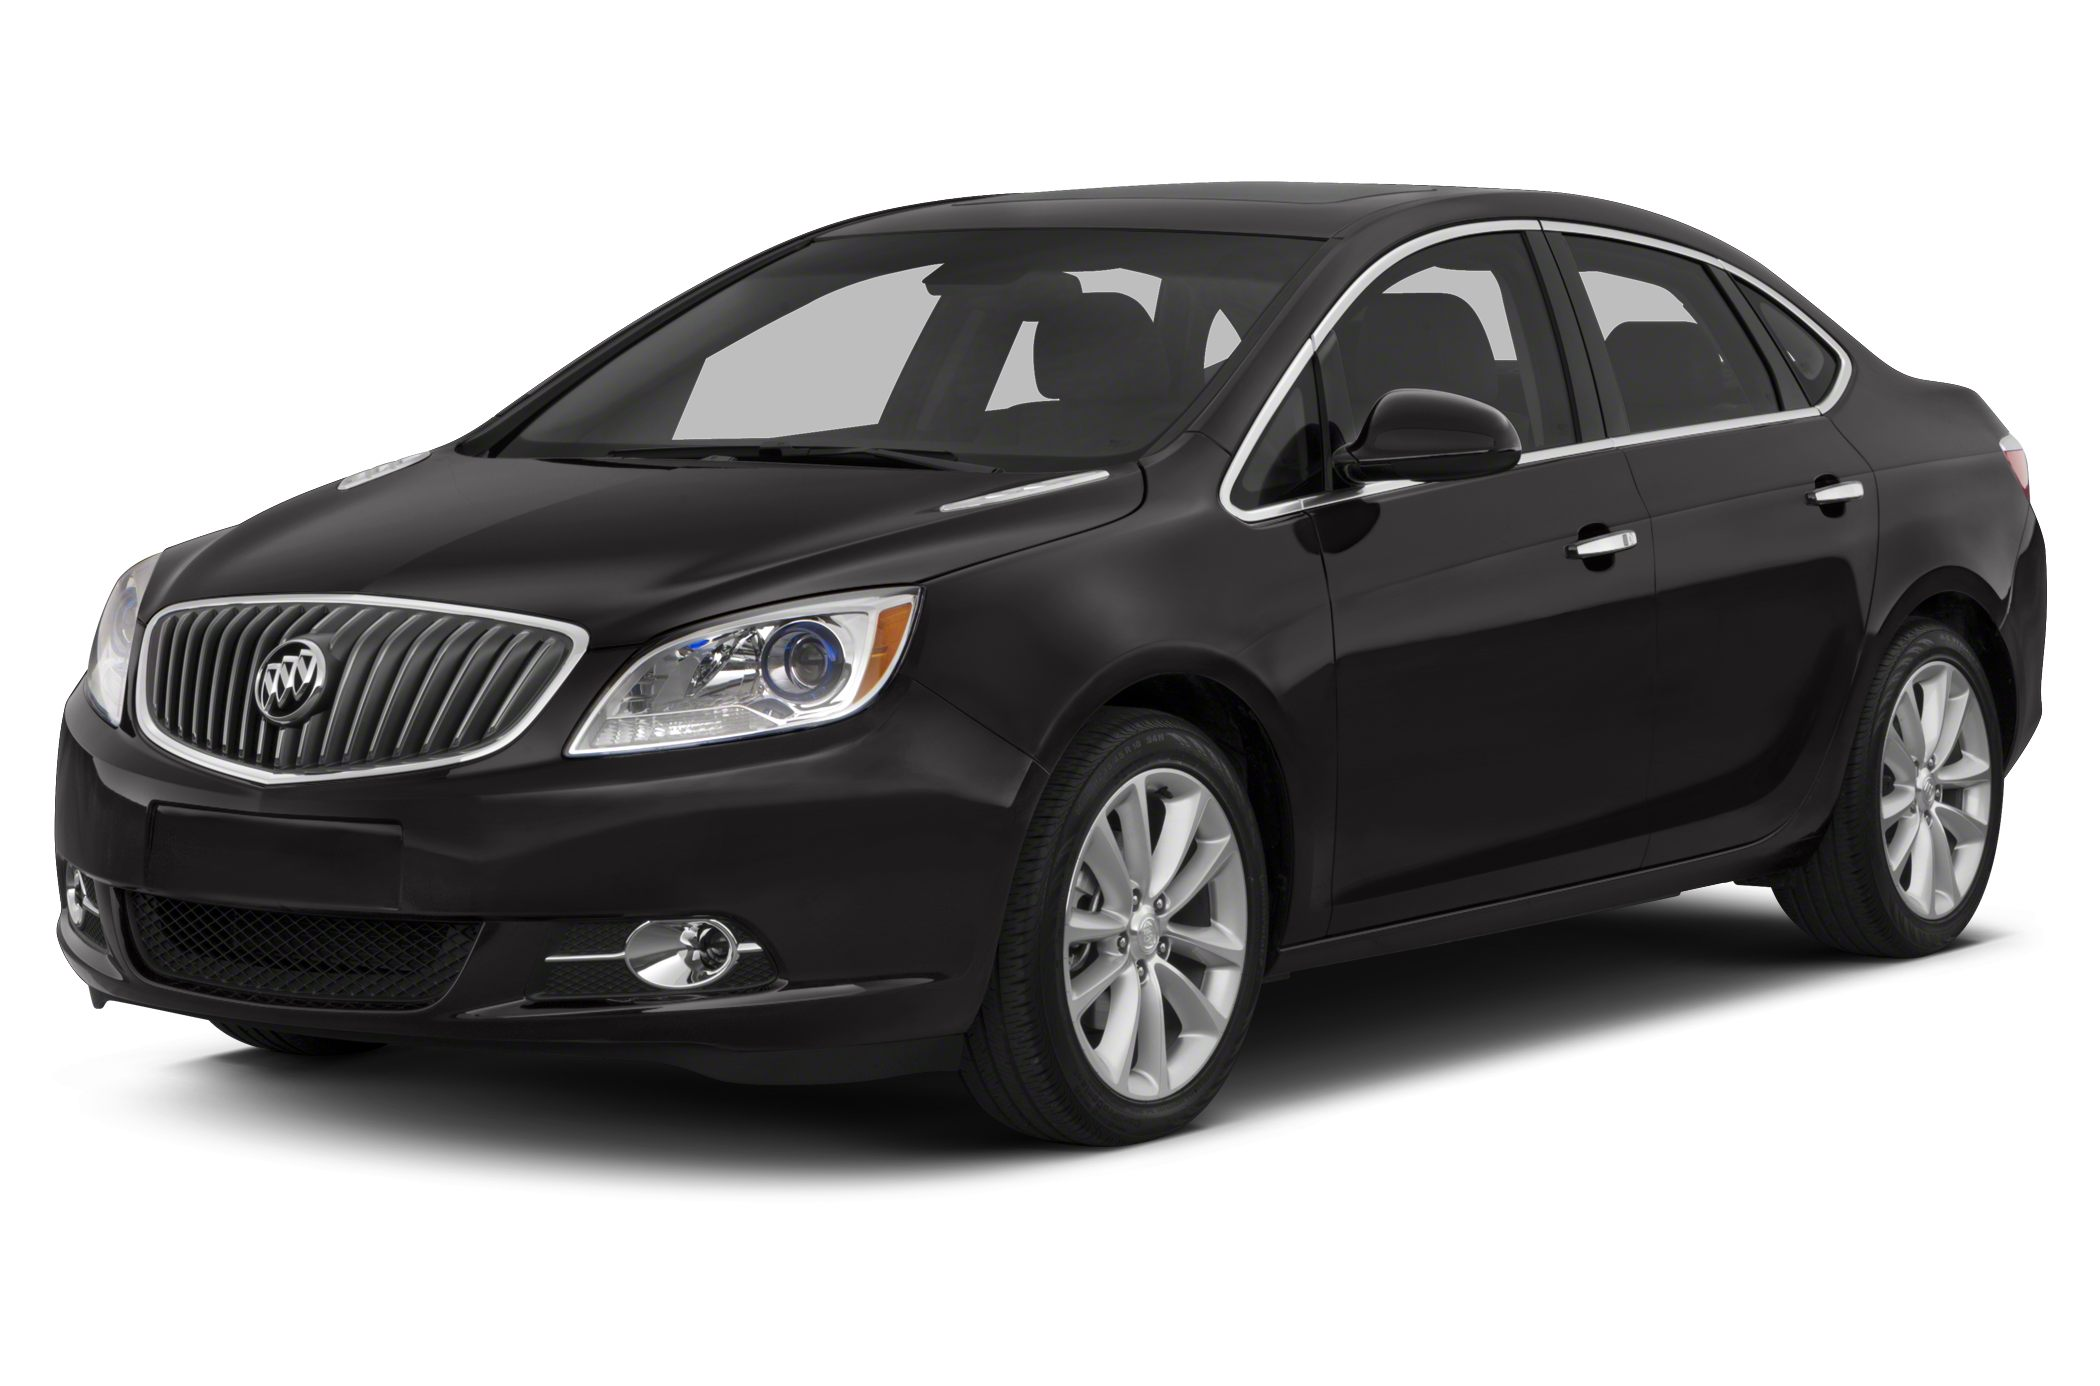 2013 Buick Verano Convenience Sedan for sale in Williamsburg for $26,665 with 4 miles.